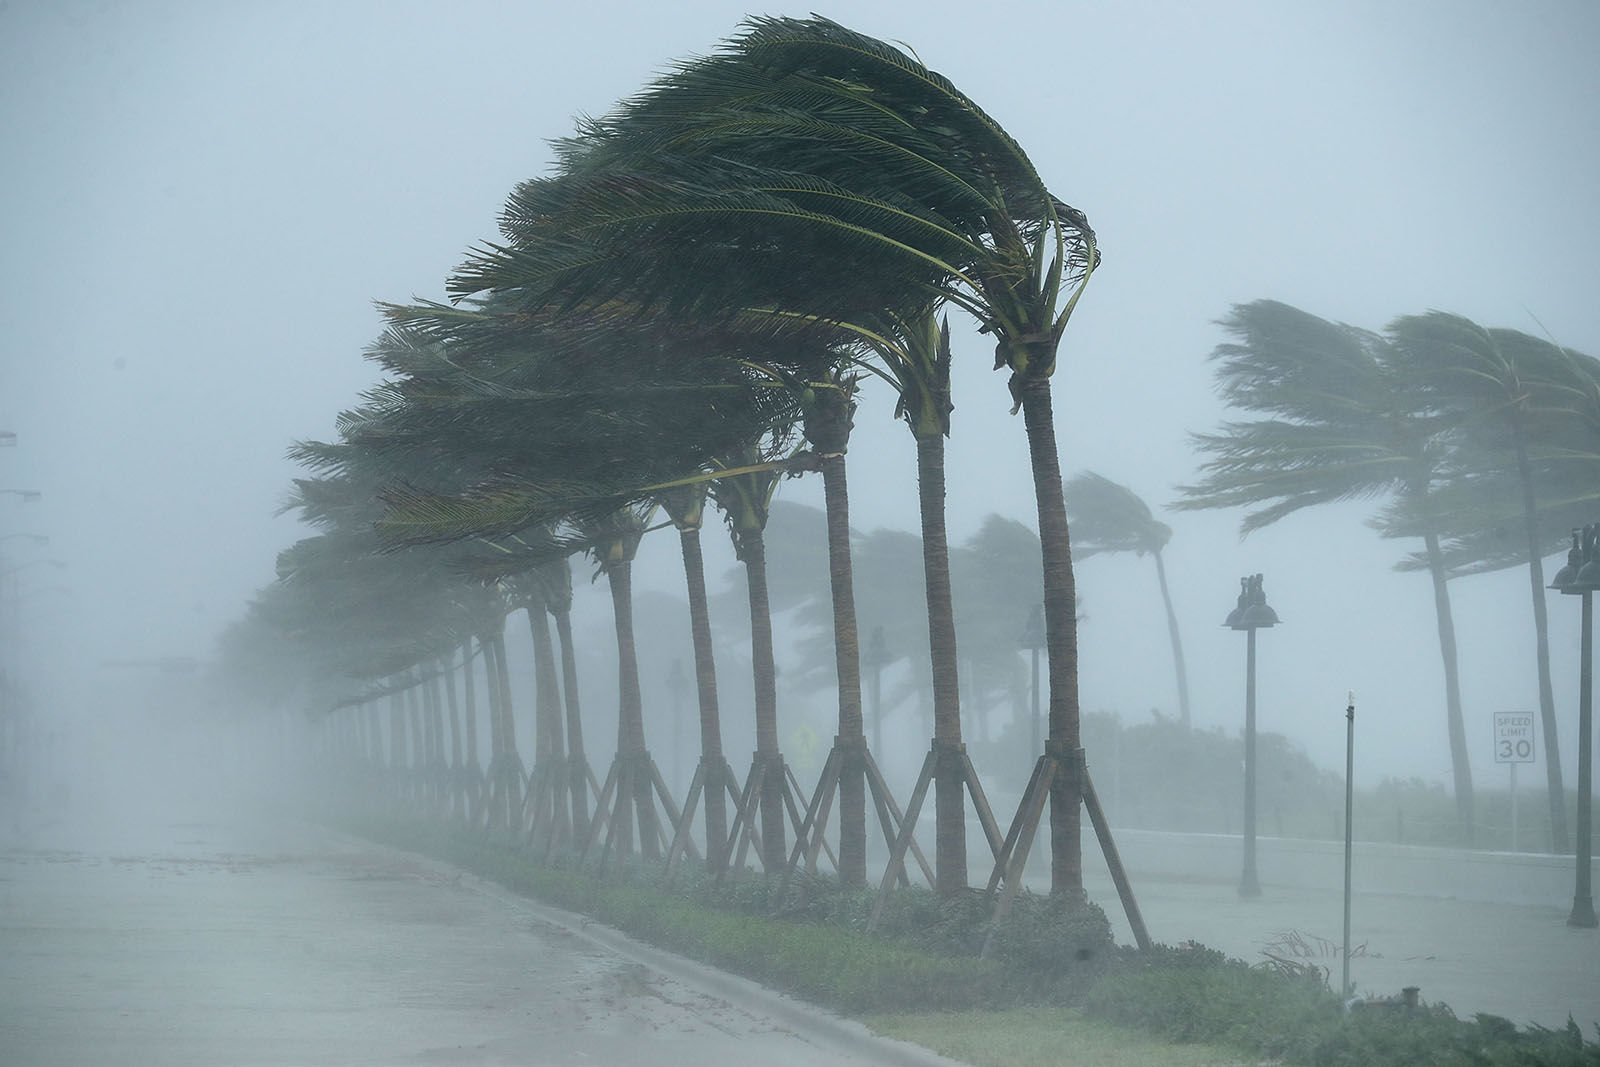 Trees bend in the tropical storm wind along North Fort Lauderdale Beach Boulevard as Hurricane Irma hits the southern part of the state Sept. 10, 2017 in Fort Lauderdale, Florida. The powerful hurricane made landfall in the United States in the Florida Keys at 9:10 a.m. after raking across the north coast of Cuba.  (Photo by Chip Somodevilla/Getty Images)